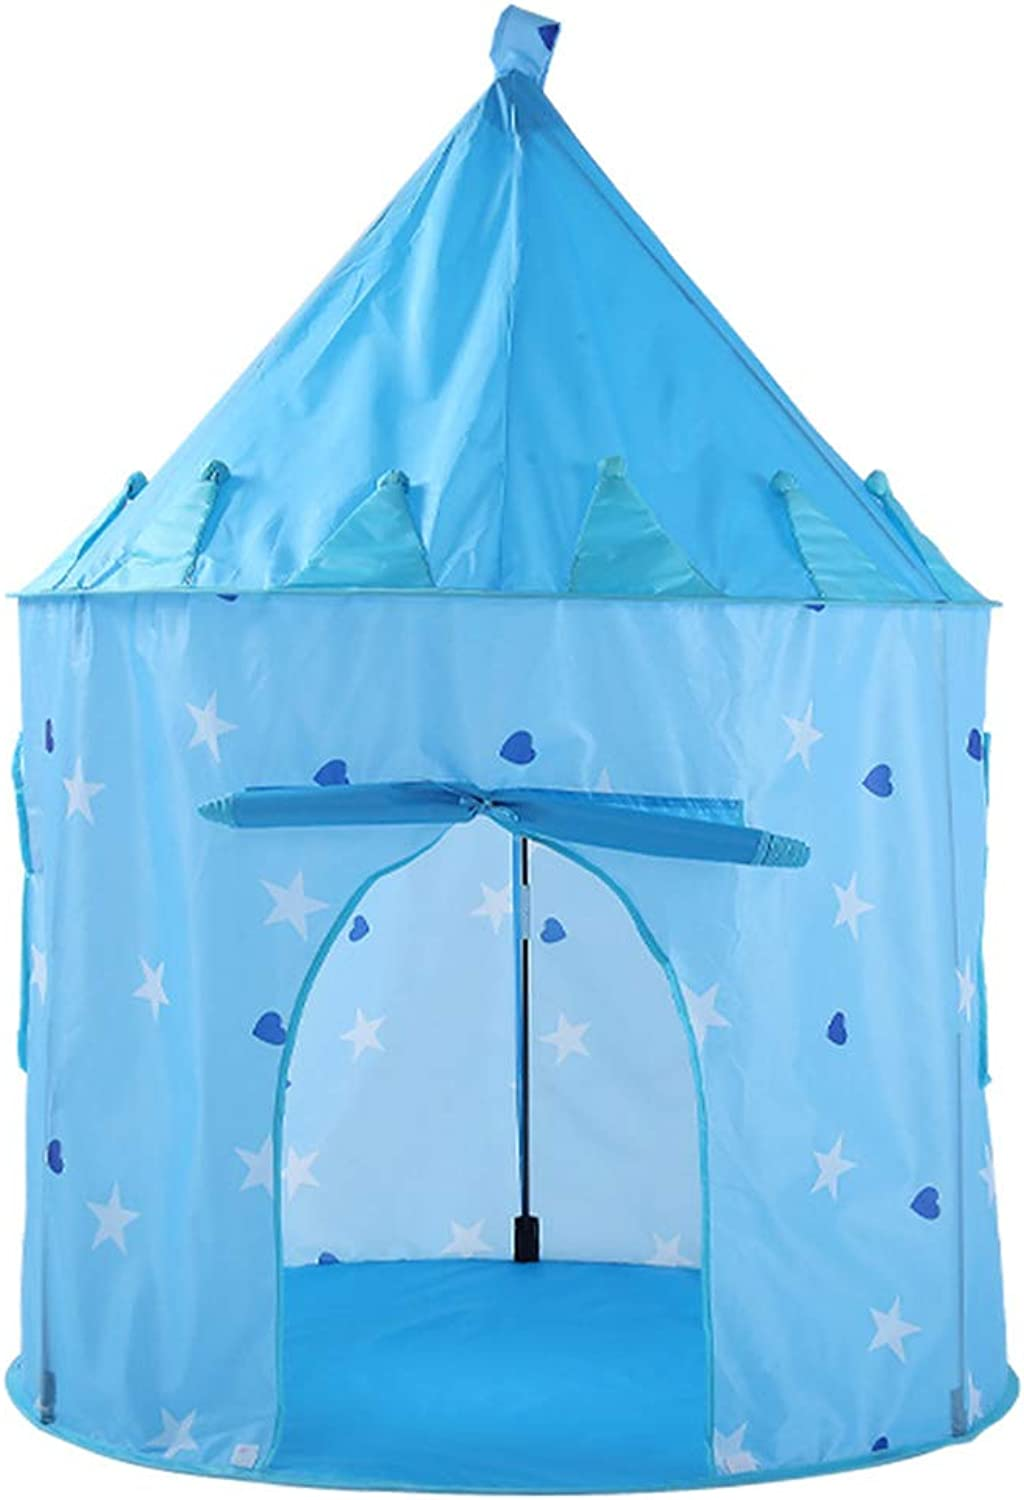 Princess Tent Starry Yurt Castle Baby Toy Game House Indoor Cartoon Girl Suitable for Indoor and Outdoor Games